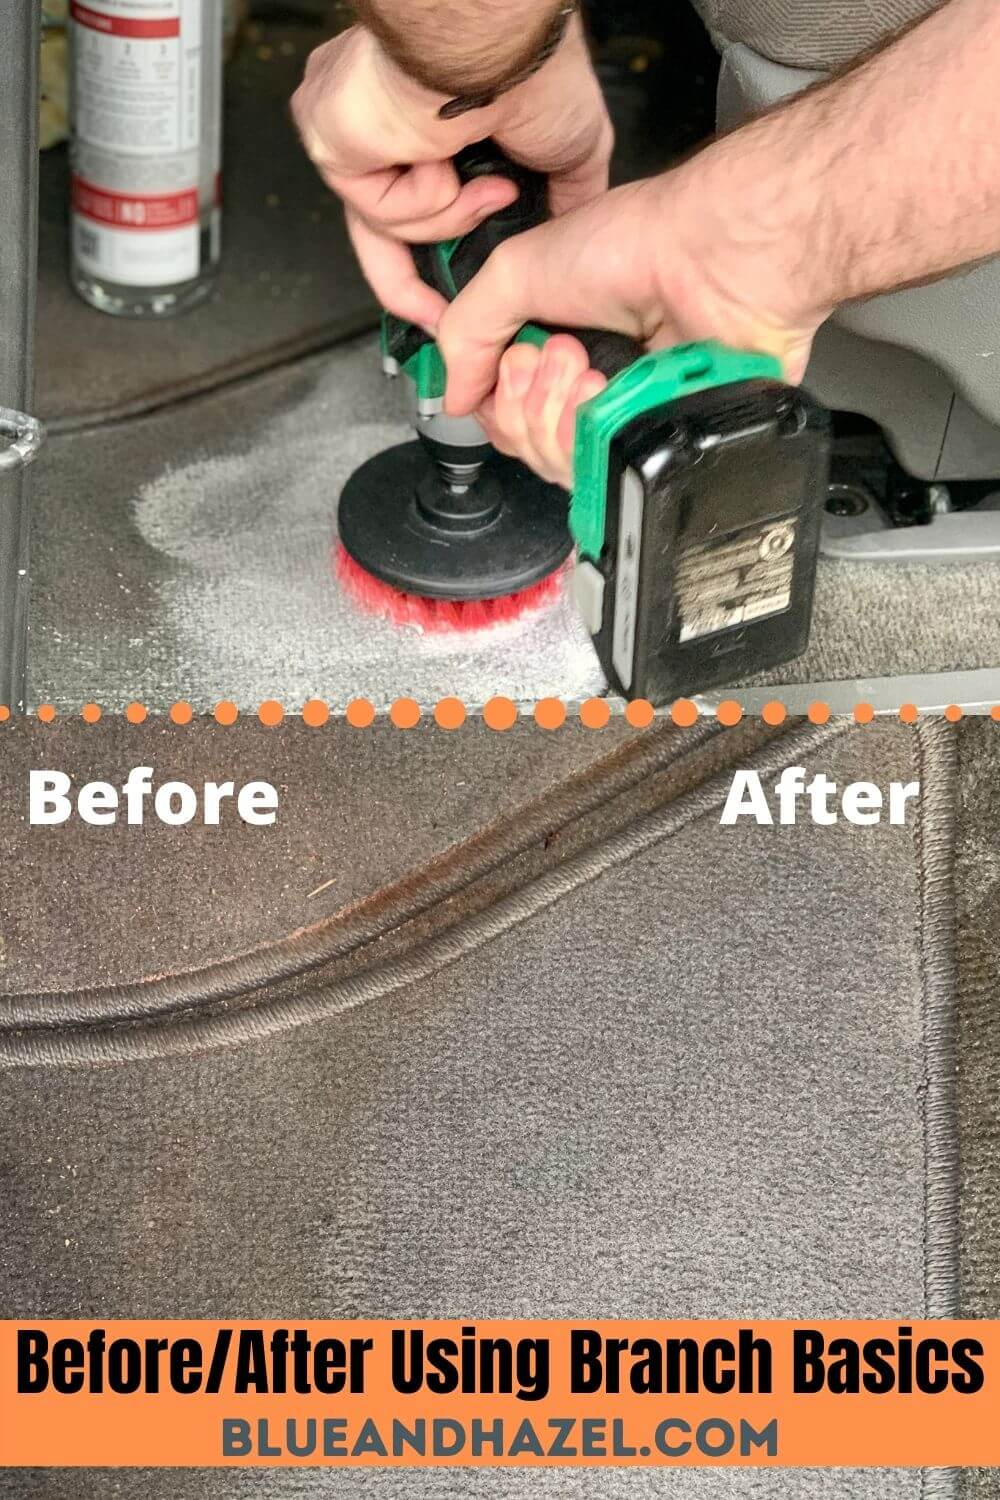 Car carpets cleaned with Branch Basics.